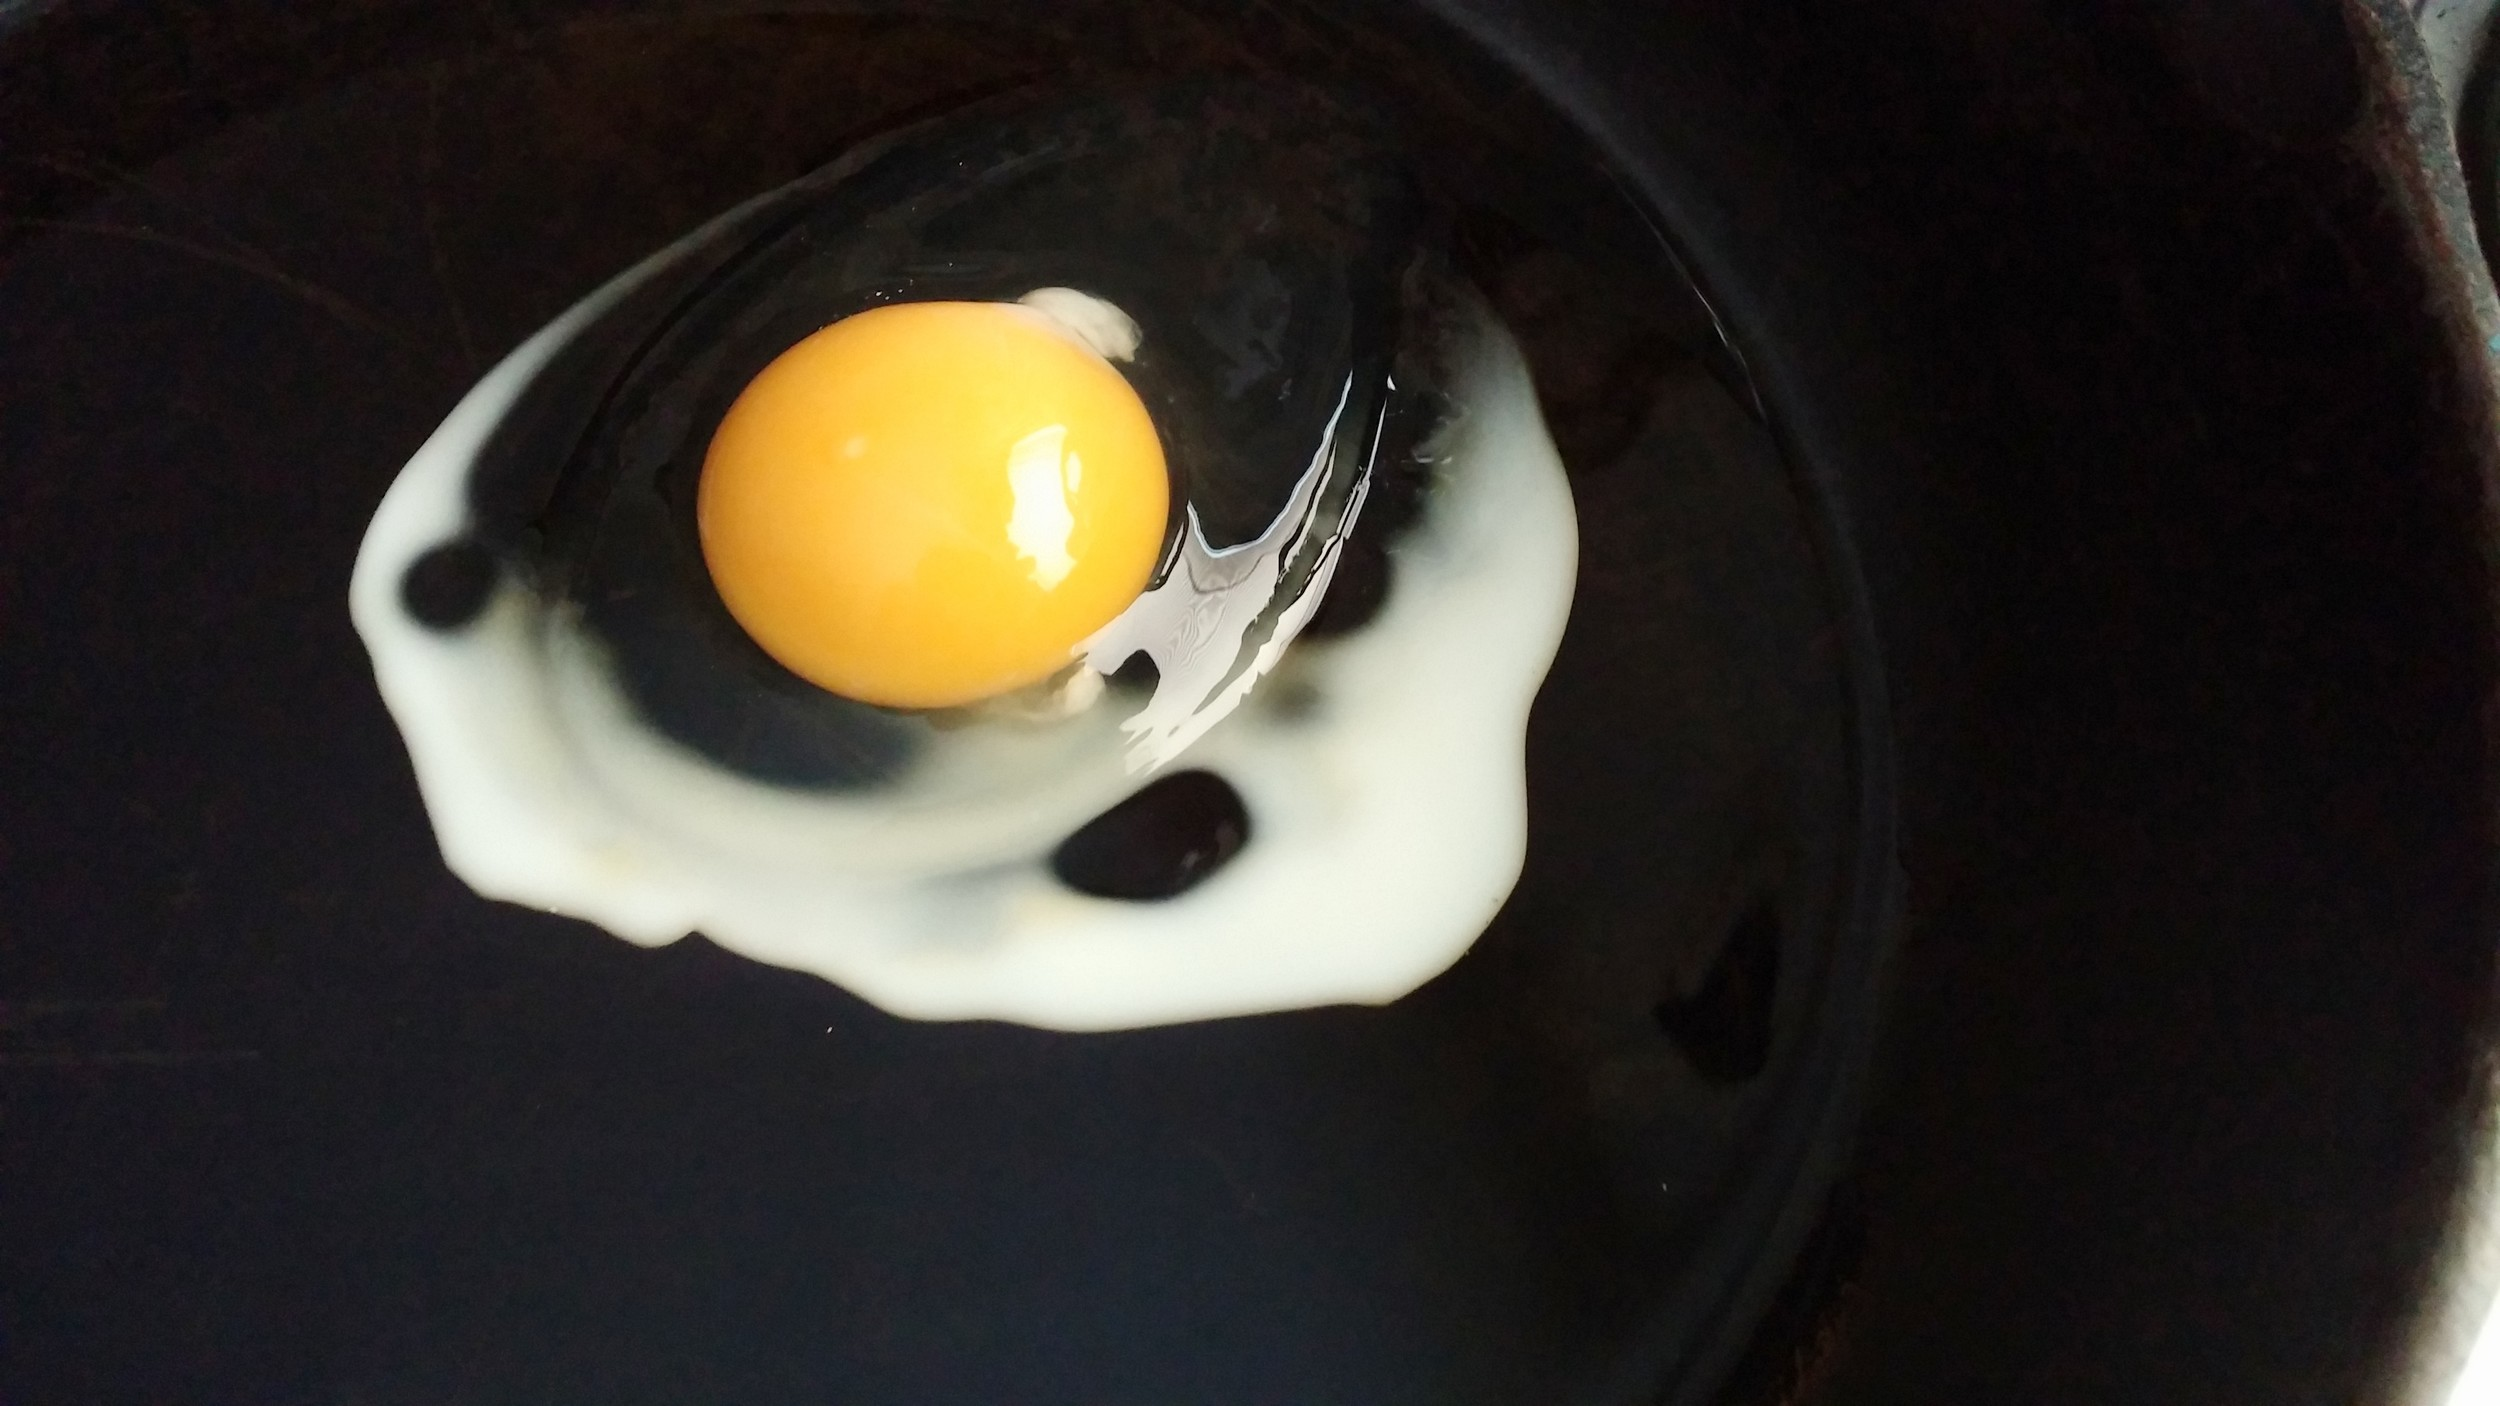 slowly frying an egg in oil